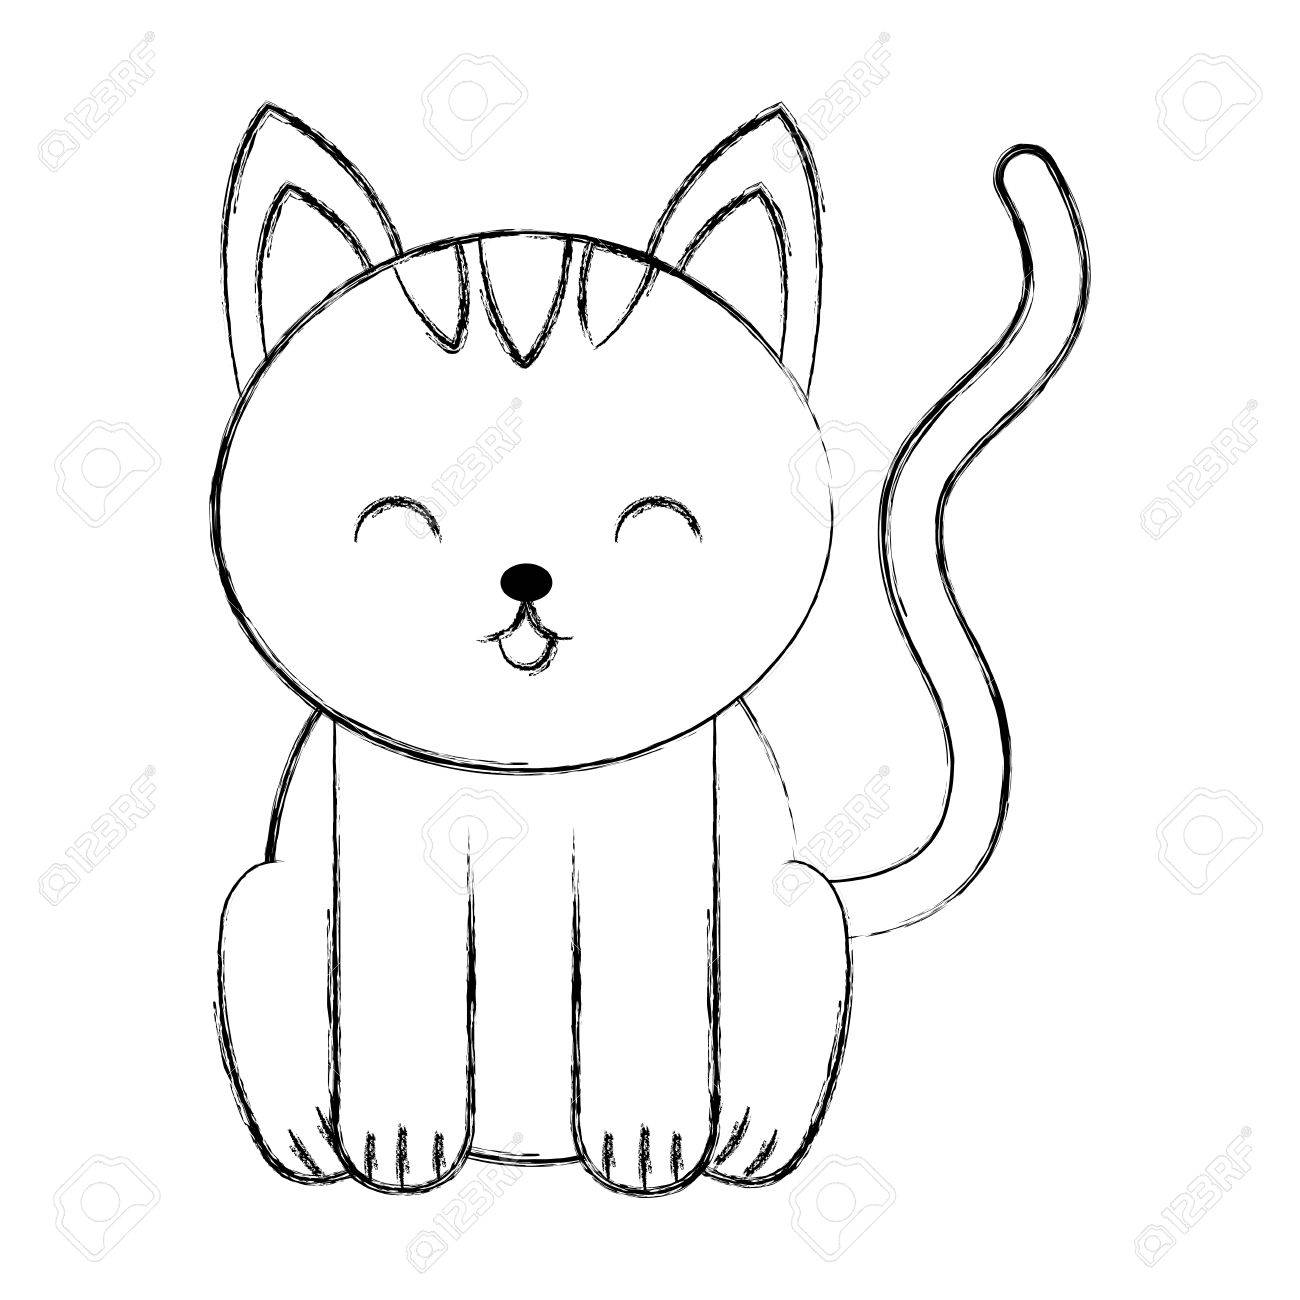 1300x1300 Cute Sketch Draw Cat Cartoon Graphic Design Royalty Free Cliparts